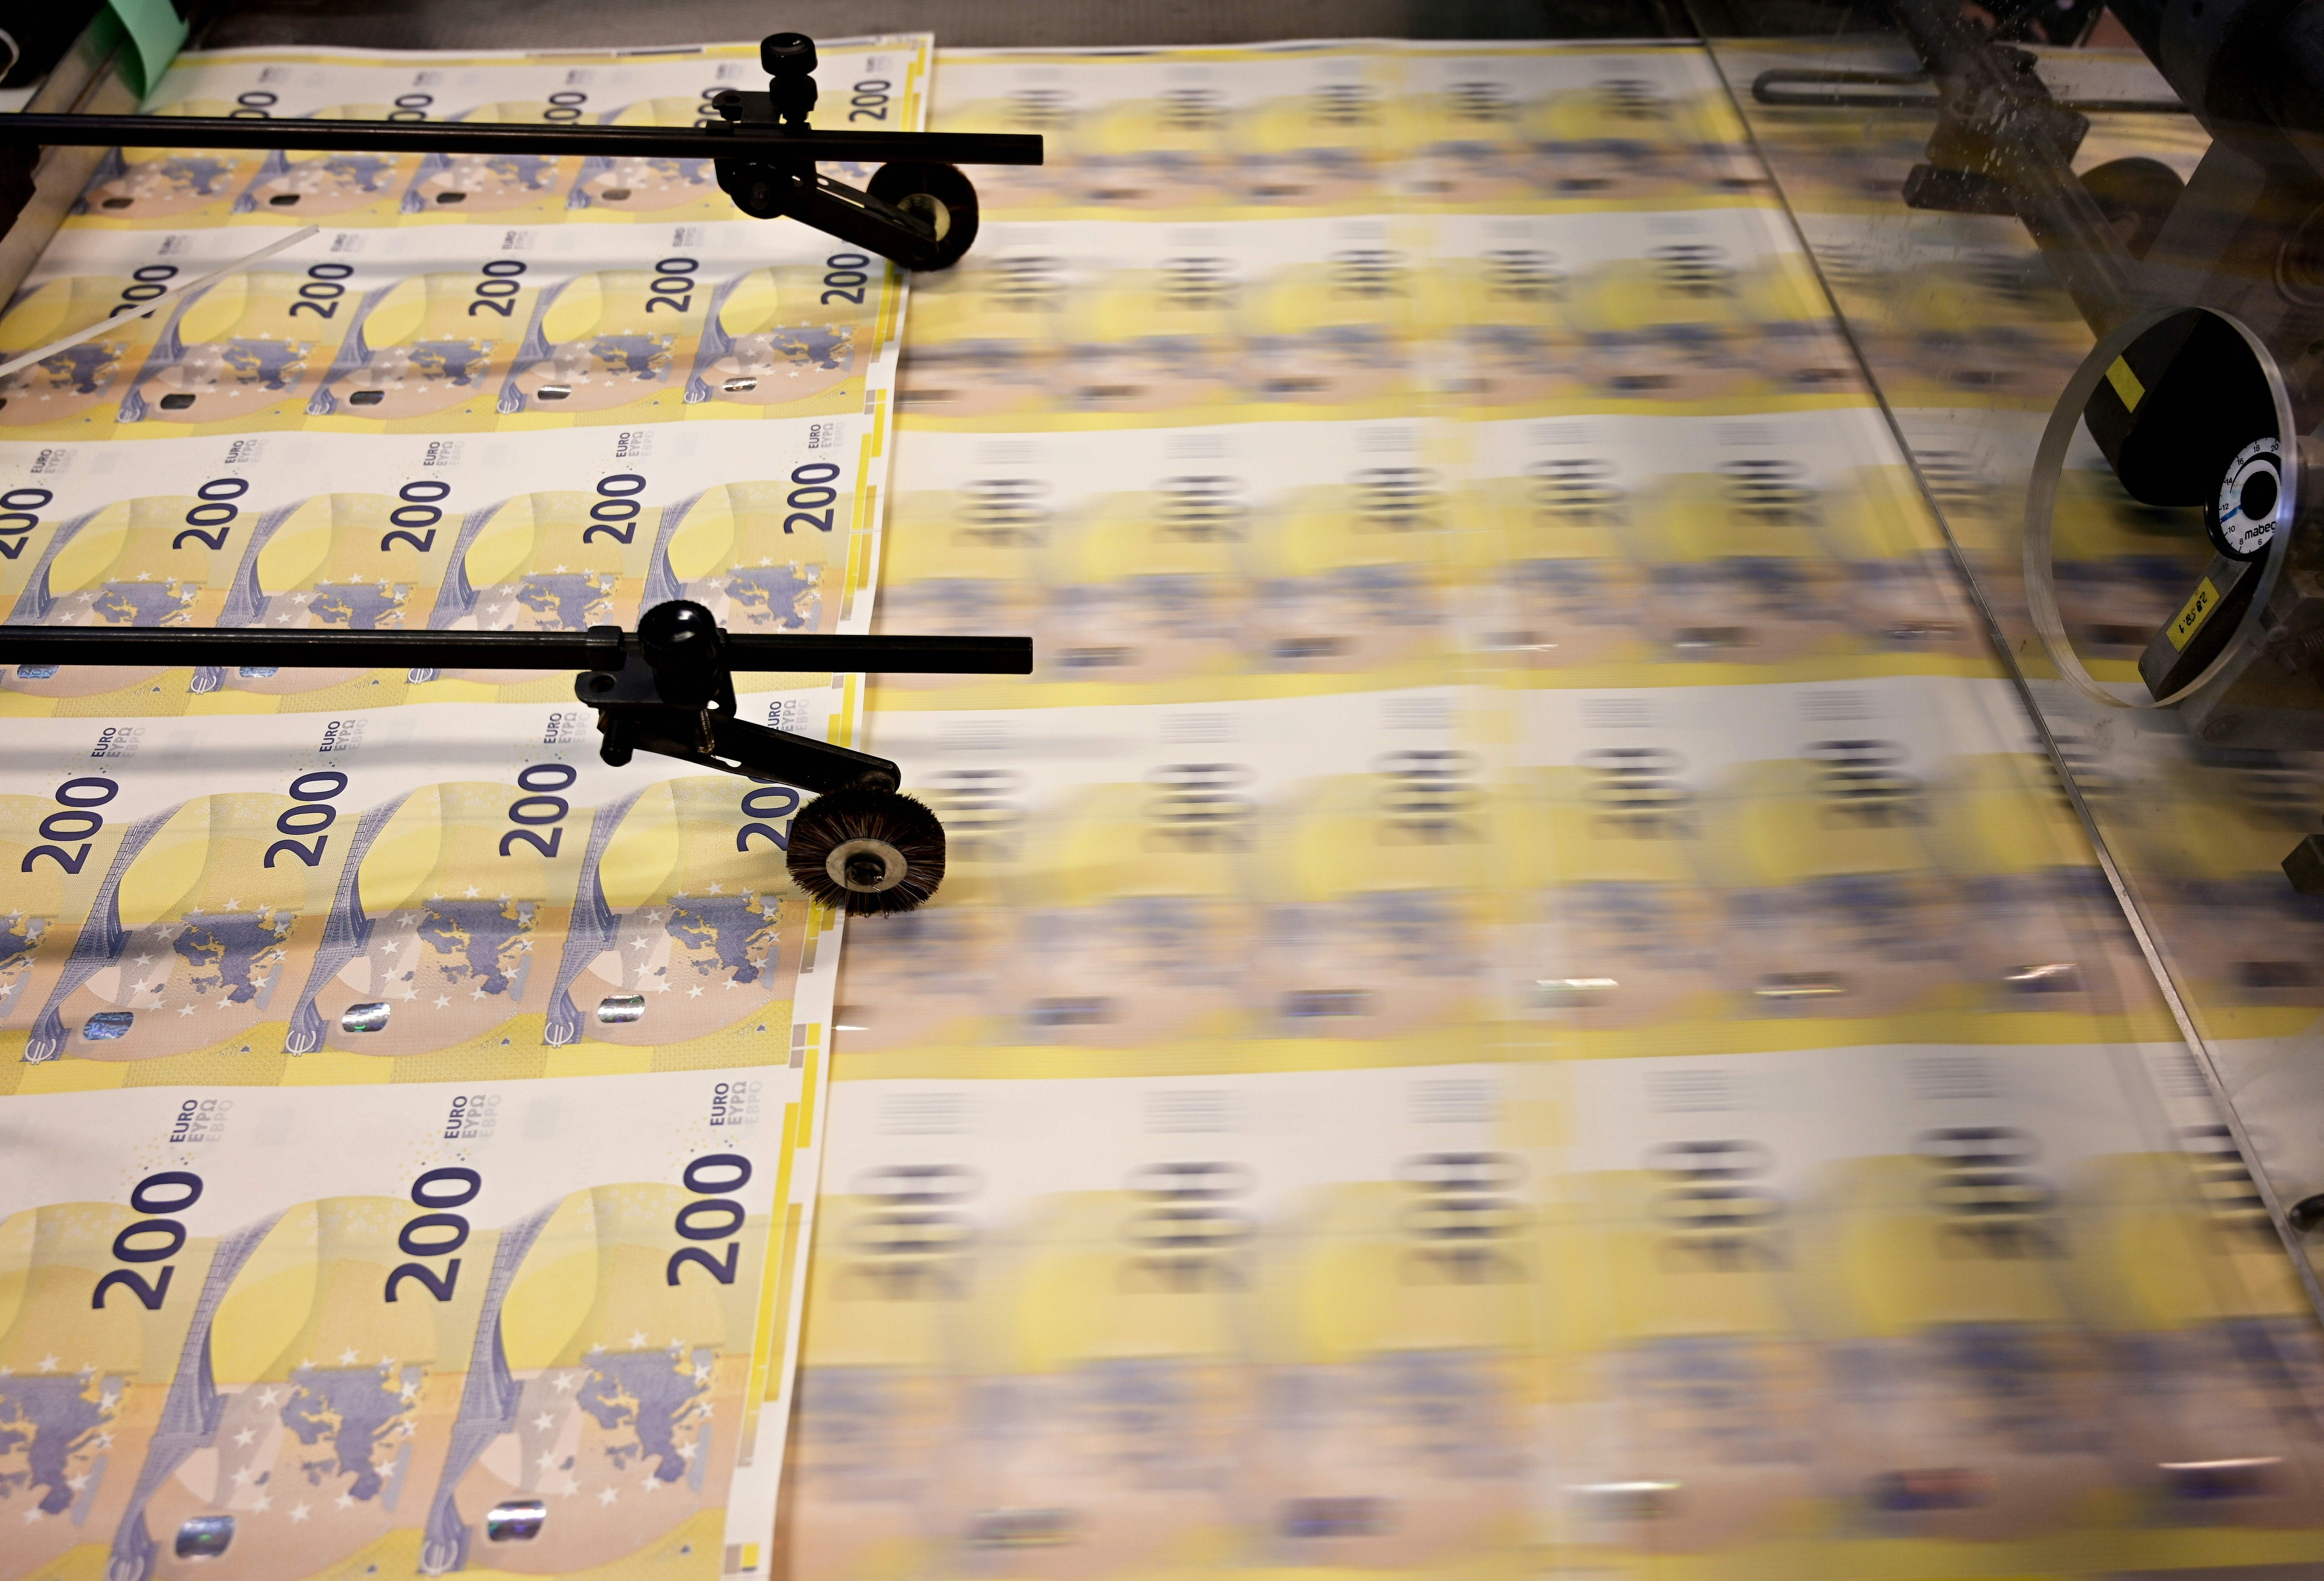 A picture taken on May 20, 2019 shows the new 200 euros banknotes during the printing procedure in the Bankitalia, the Italian national central bank, high-security factory in Rome. (VINCENZO PINTO/AFP/Getty Images)